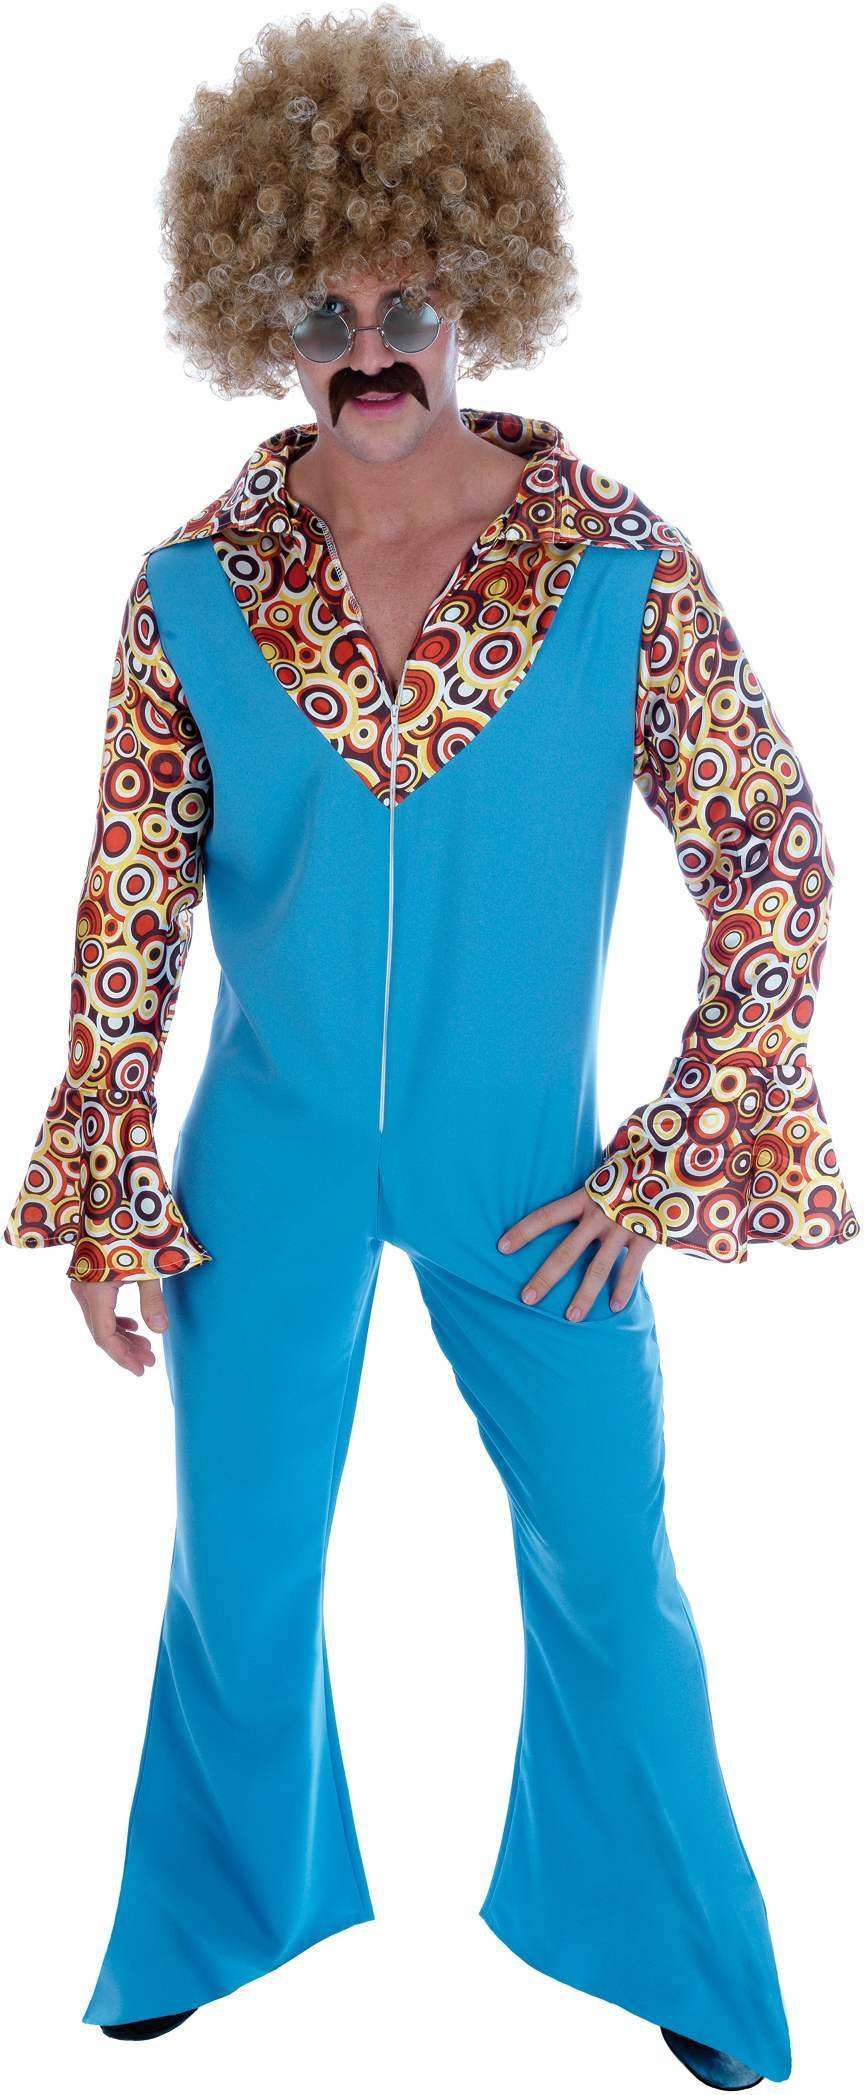 Groovy Male Disco Dancer Tash Fancy Dress Costume 1970s 70